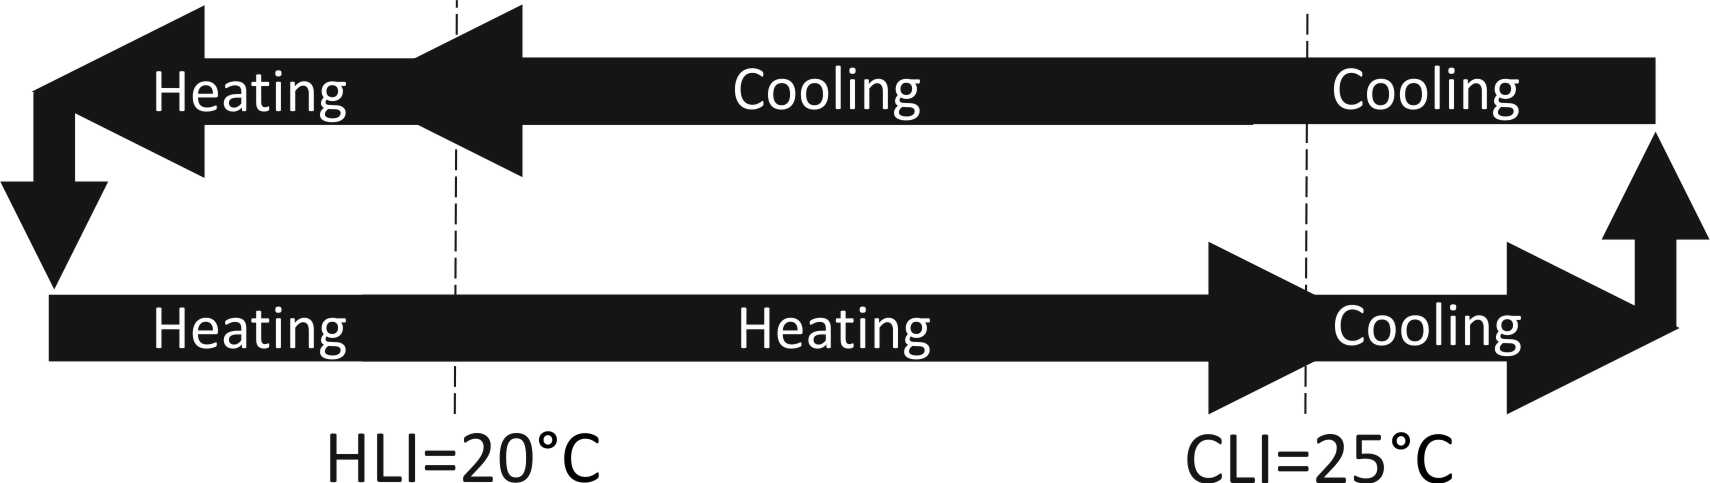 Heating/Cooling changeover